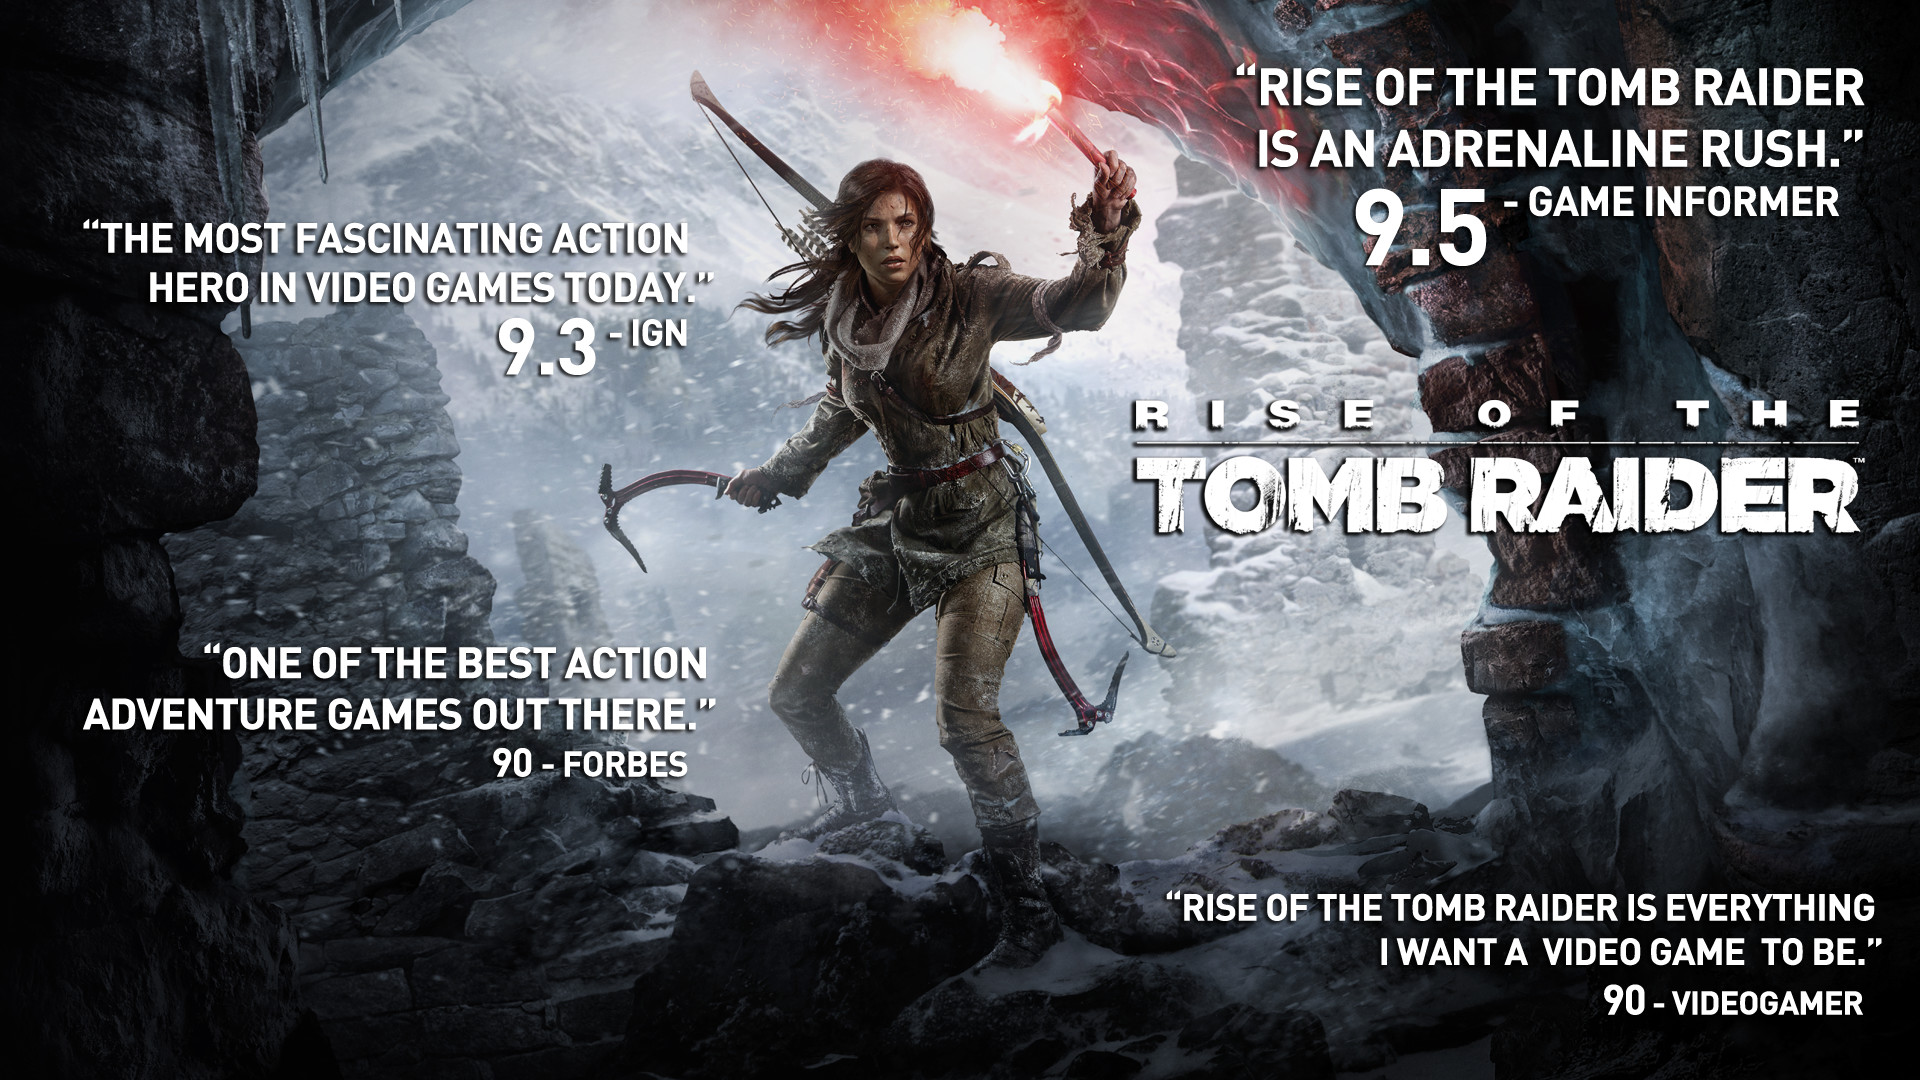 2625-rise-of-the-tomb-raider-20-years-celebration-edition-gallery-6_1